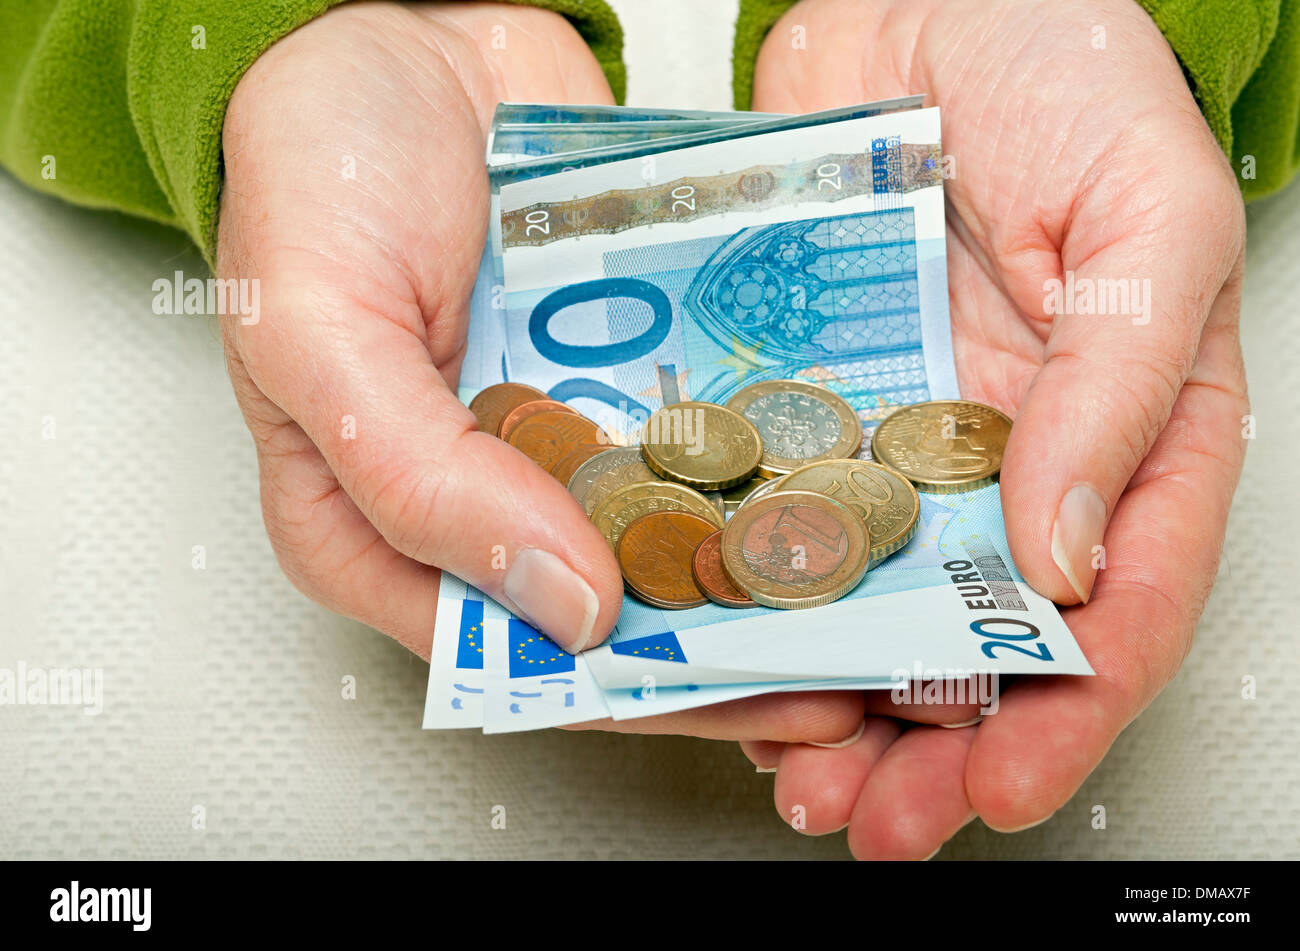 Hands holding 20 Euro notes and coins - Stock Image